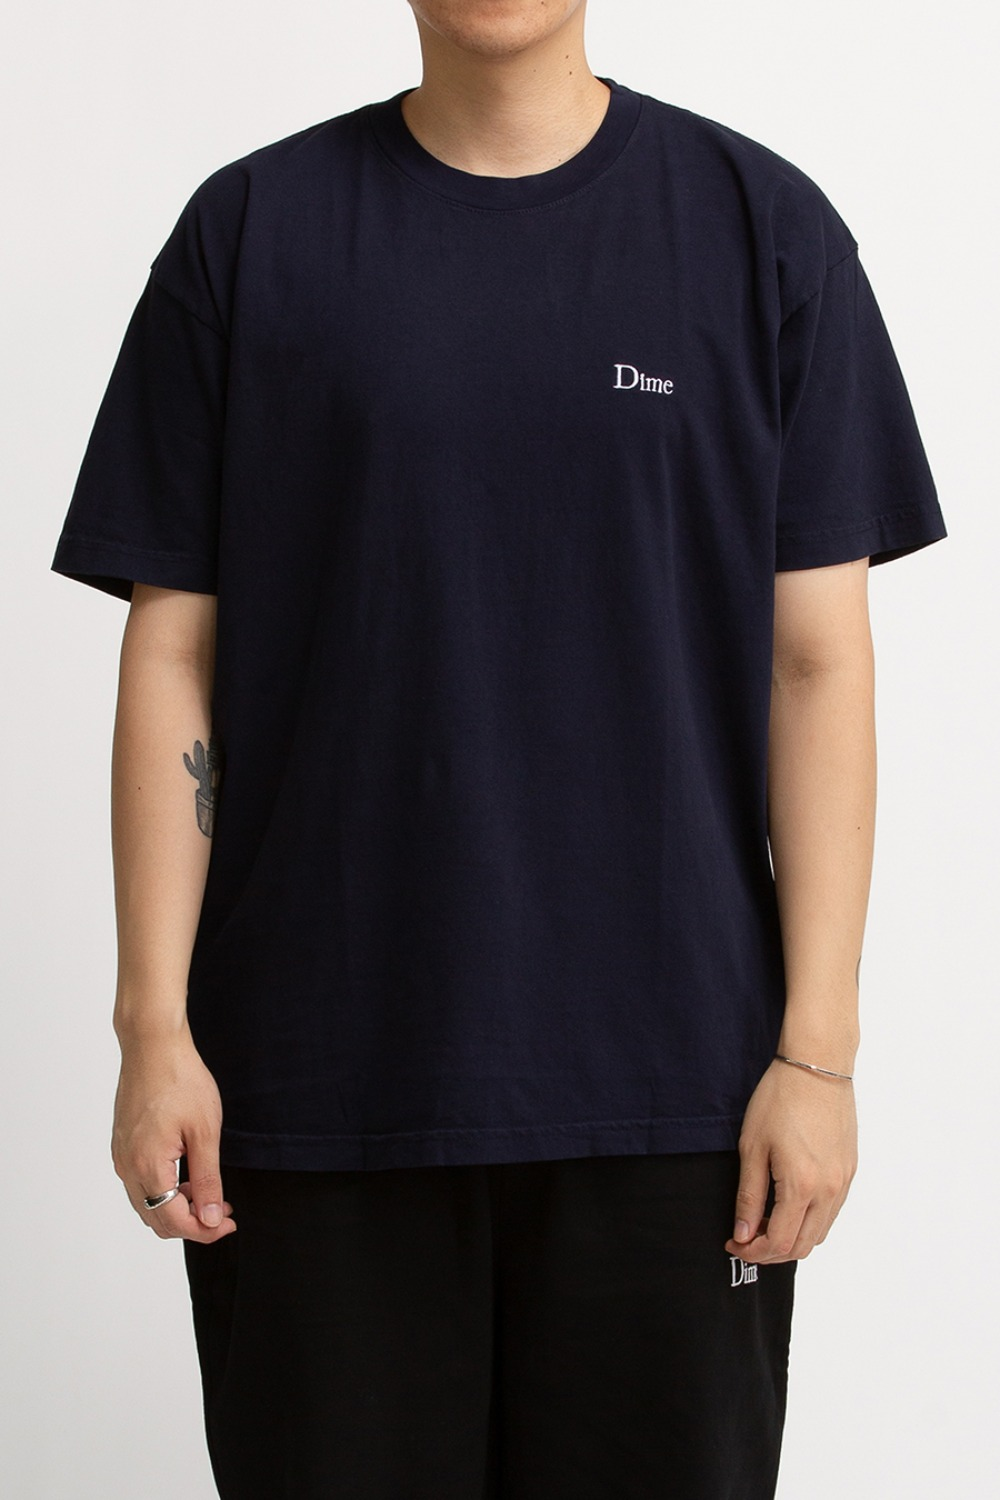 DIME CLASSIC LOGO EMBROIDERED T-SHIRT NAVY